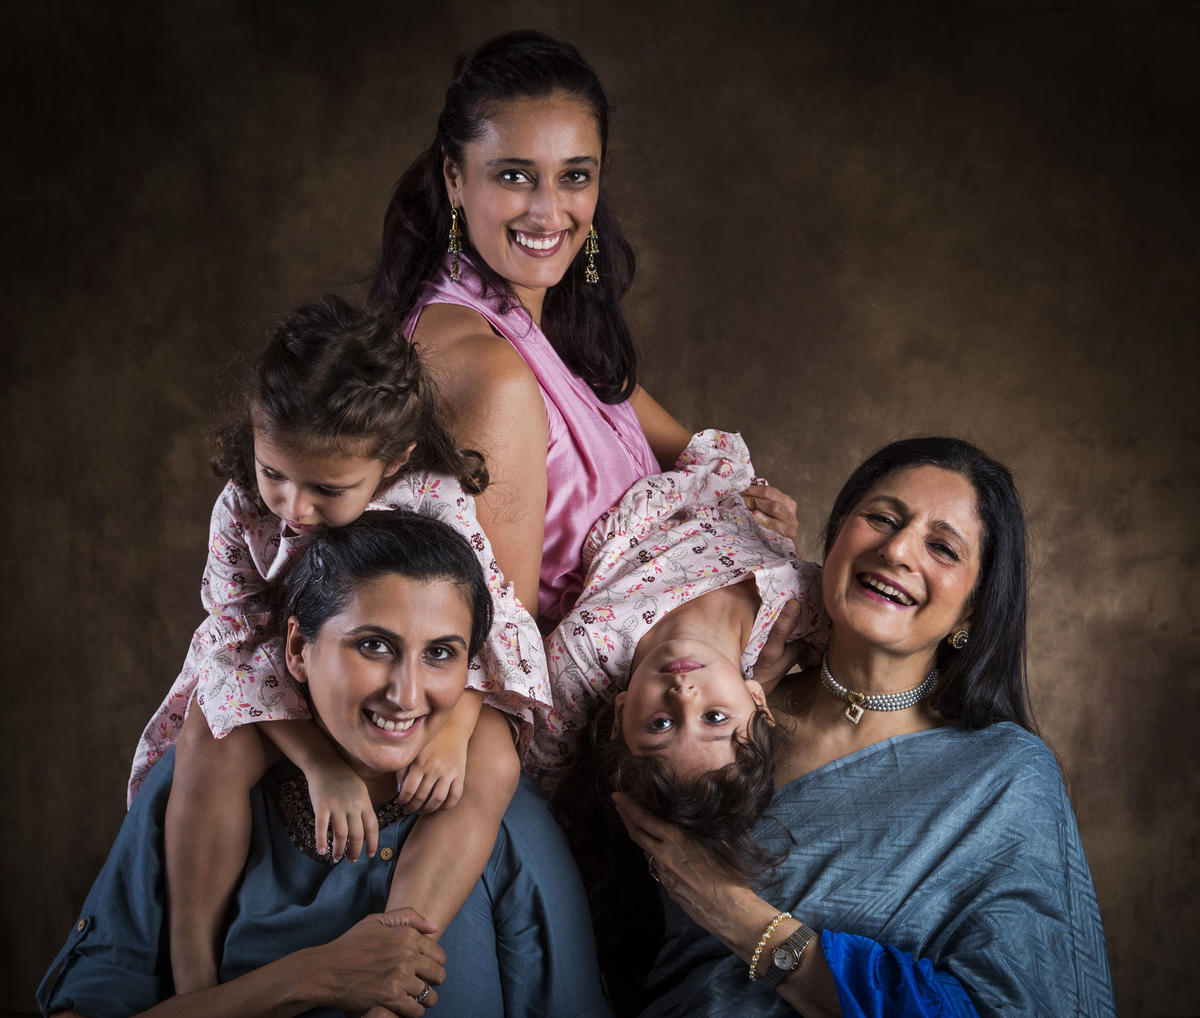 Ashima Narain with her Mom, Rewa, her sister, Ruchi and her daughters, Saira and Jahanara